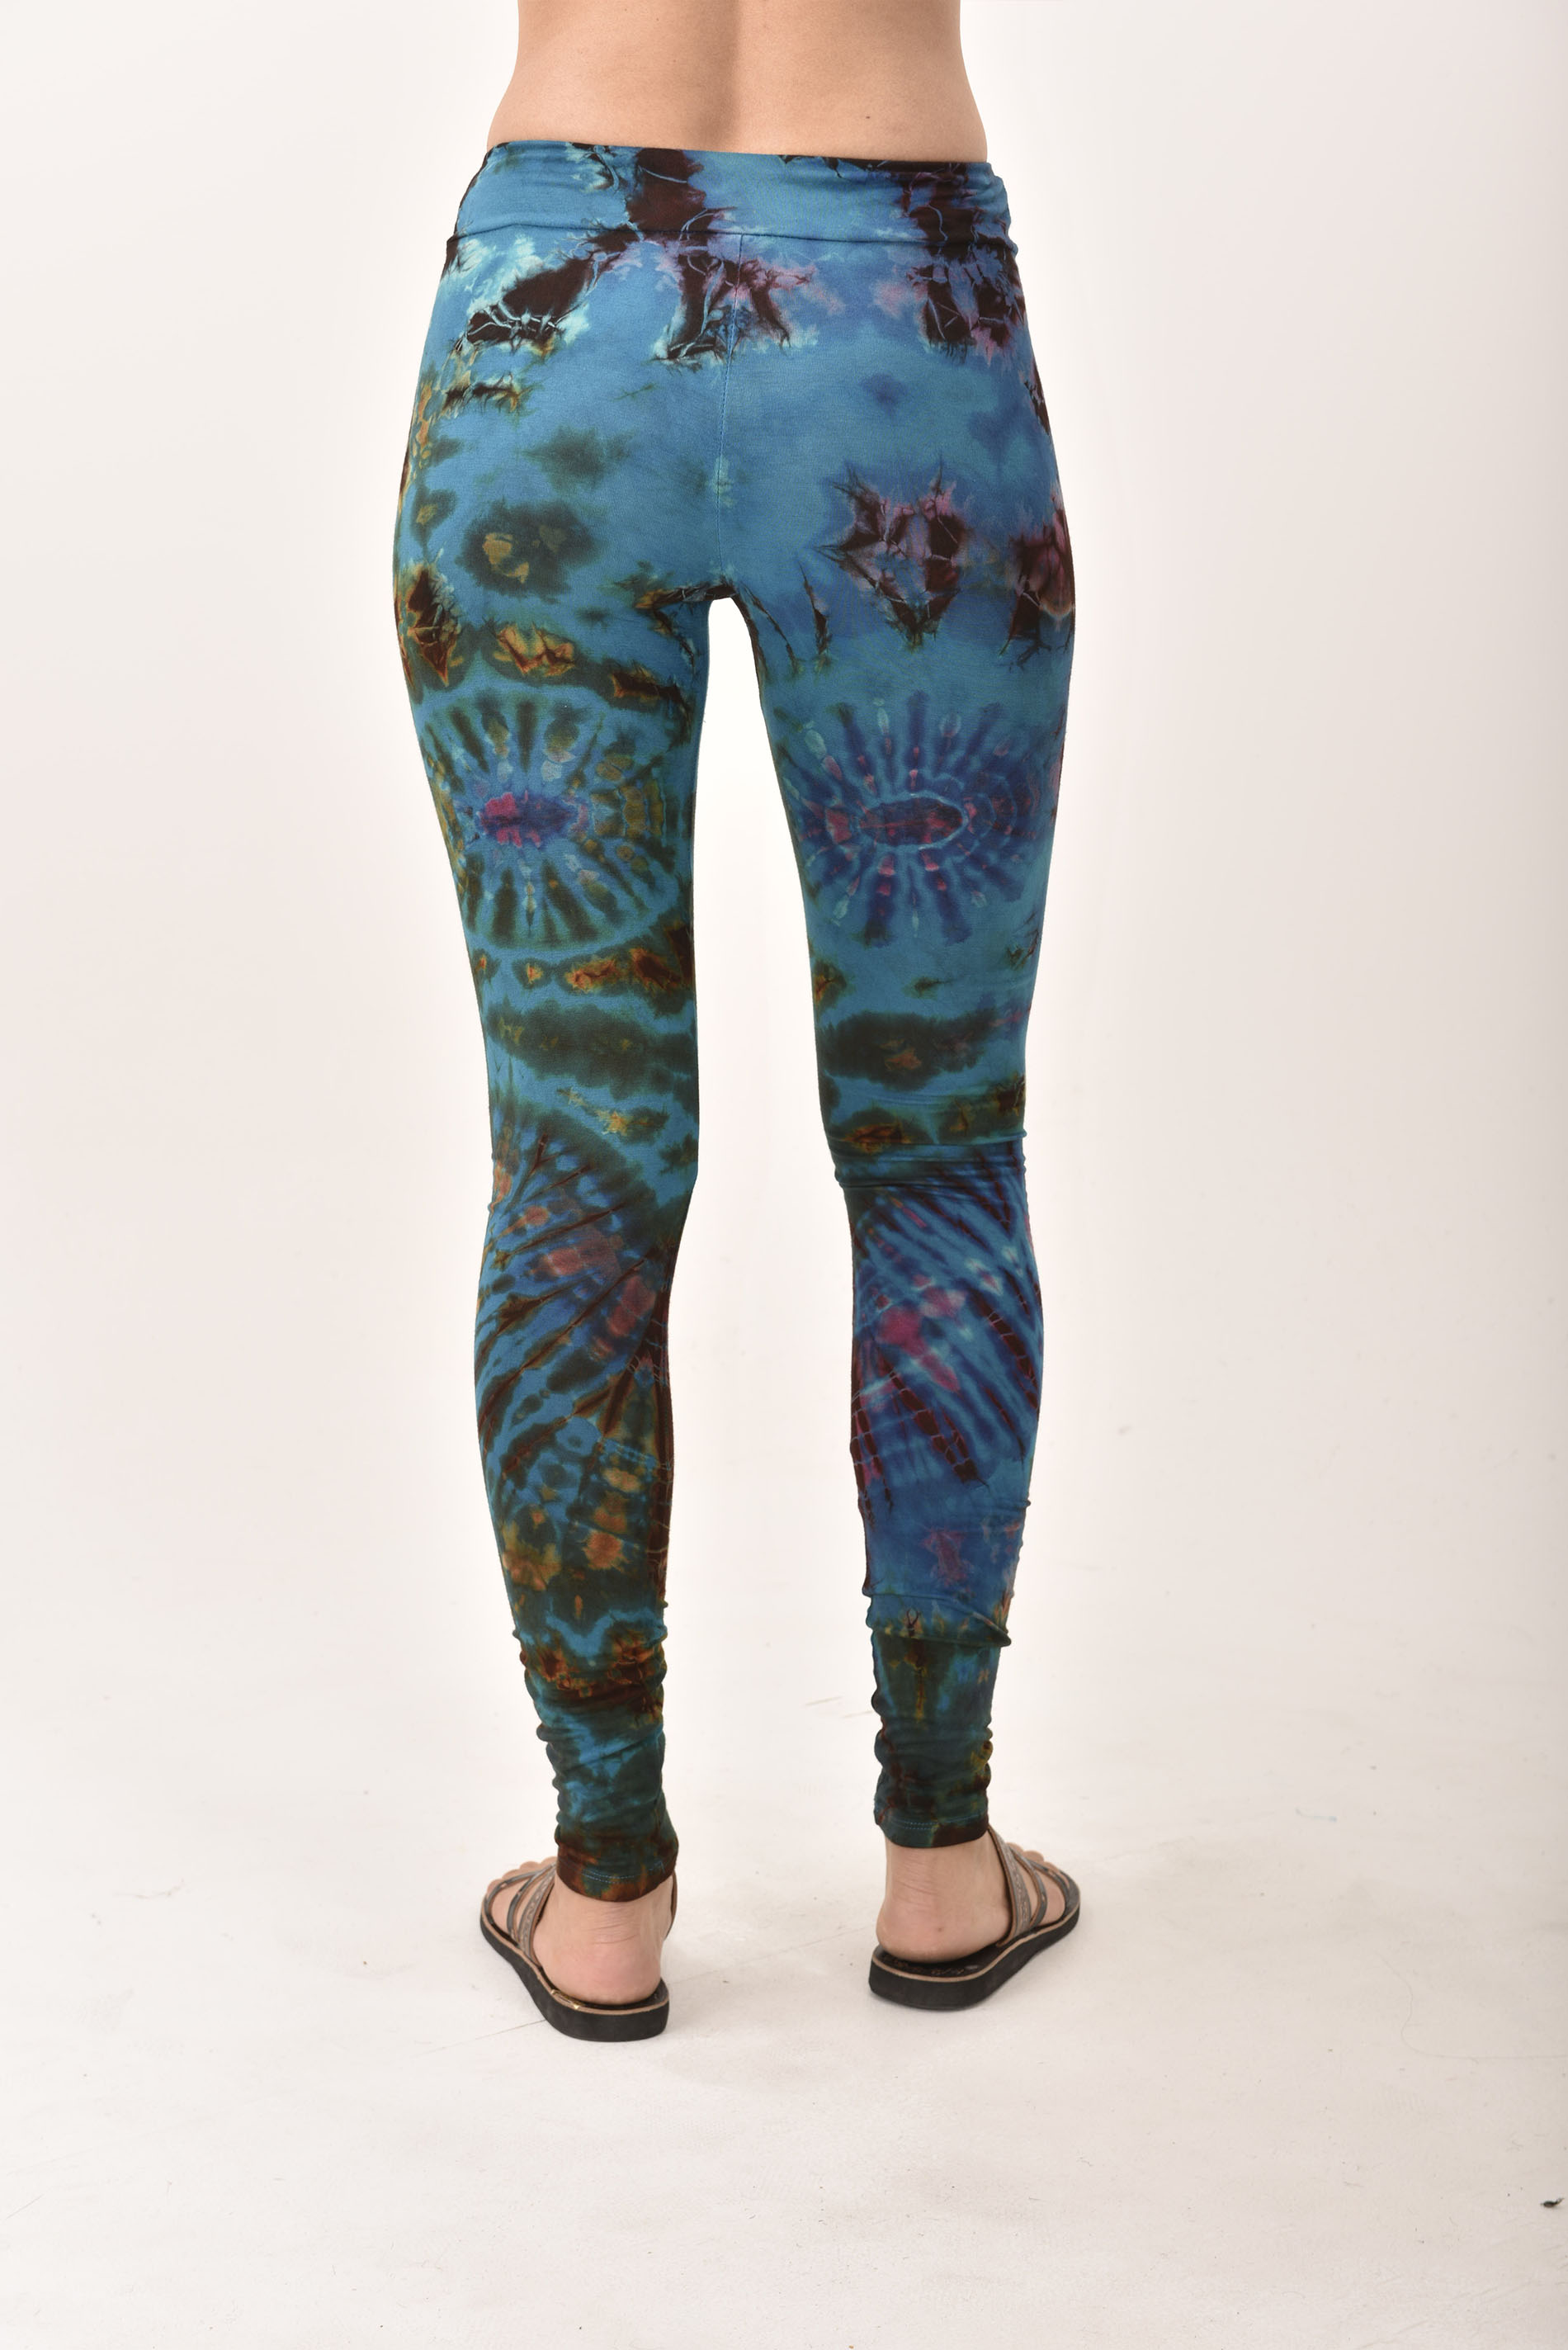 Hand Painted Tie Dye deluxe Leggings on higher quality Rayon/Spandex blend, Blue Green